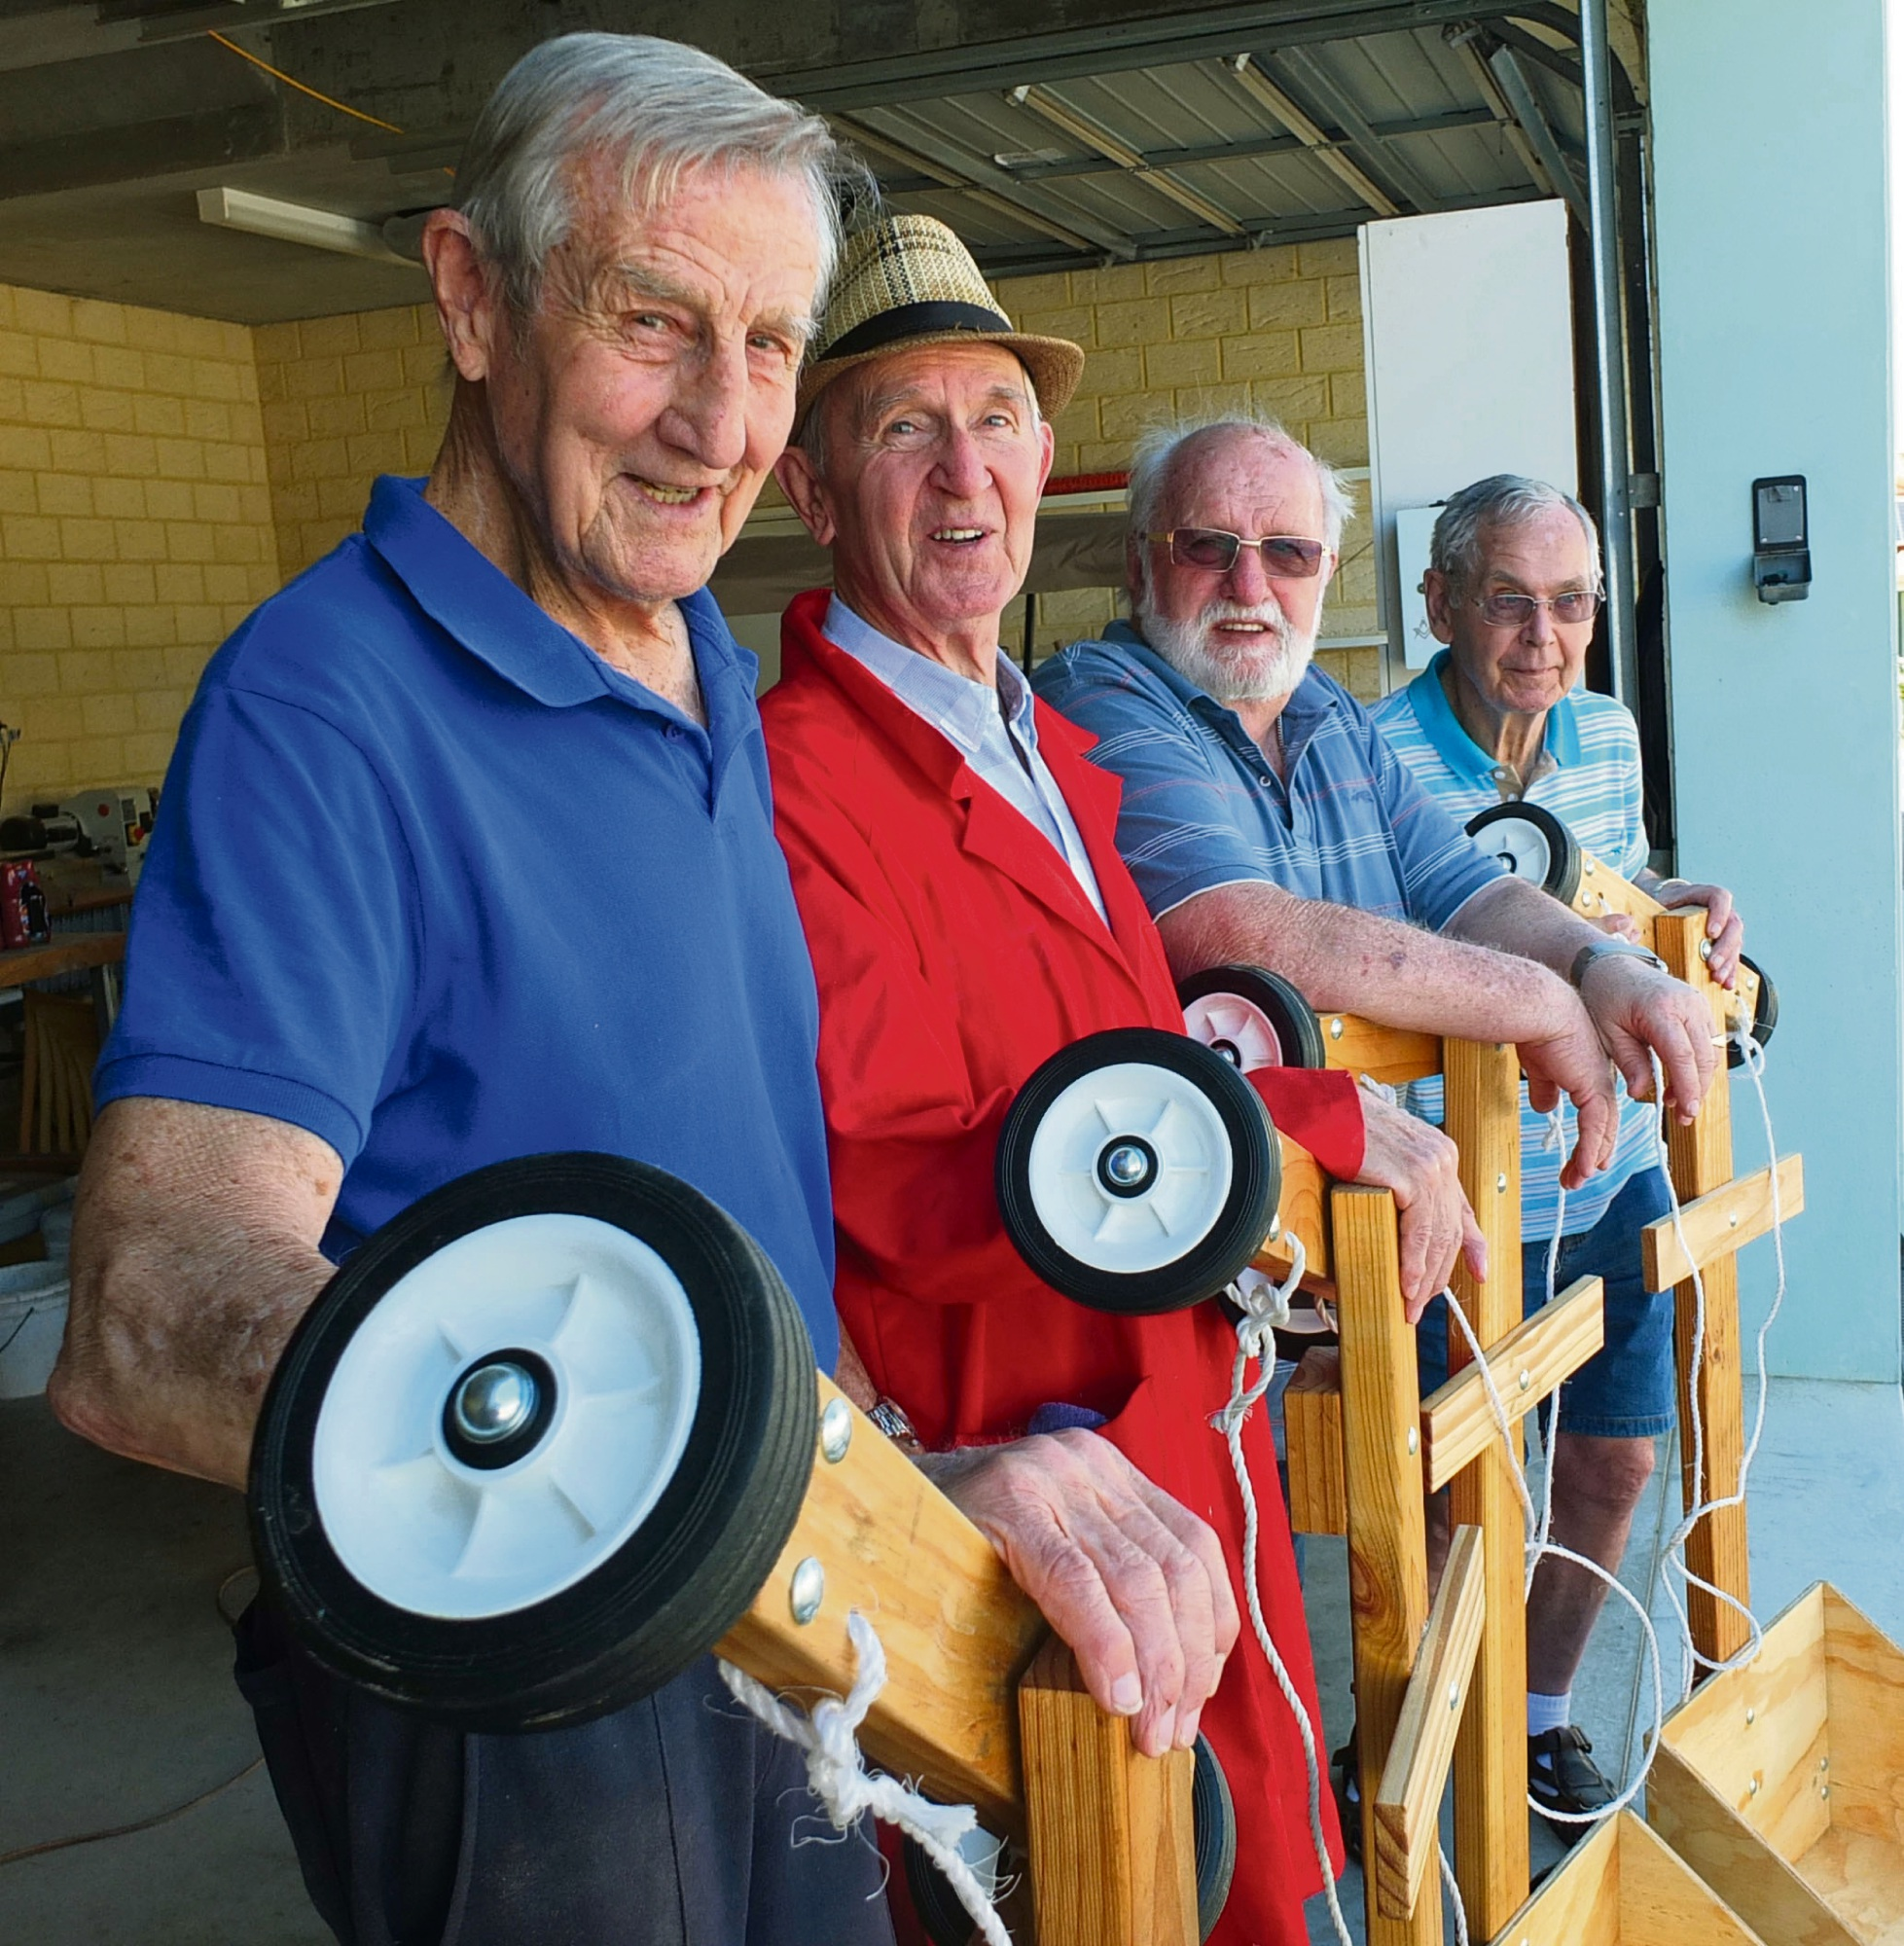 Regents Garden Men 's Shed members Buzza, Michael, Marinus and Abehard with the billy carts they made for this year's Show.